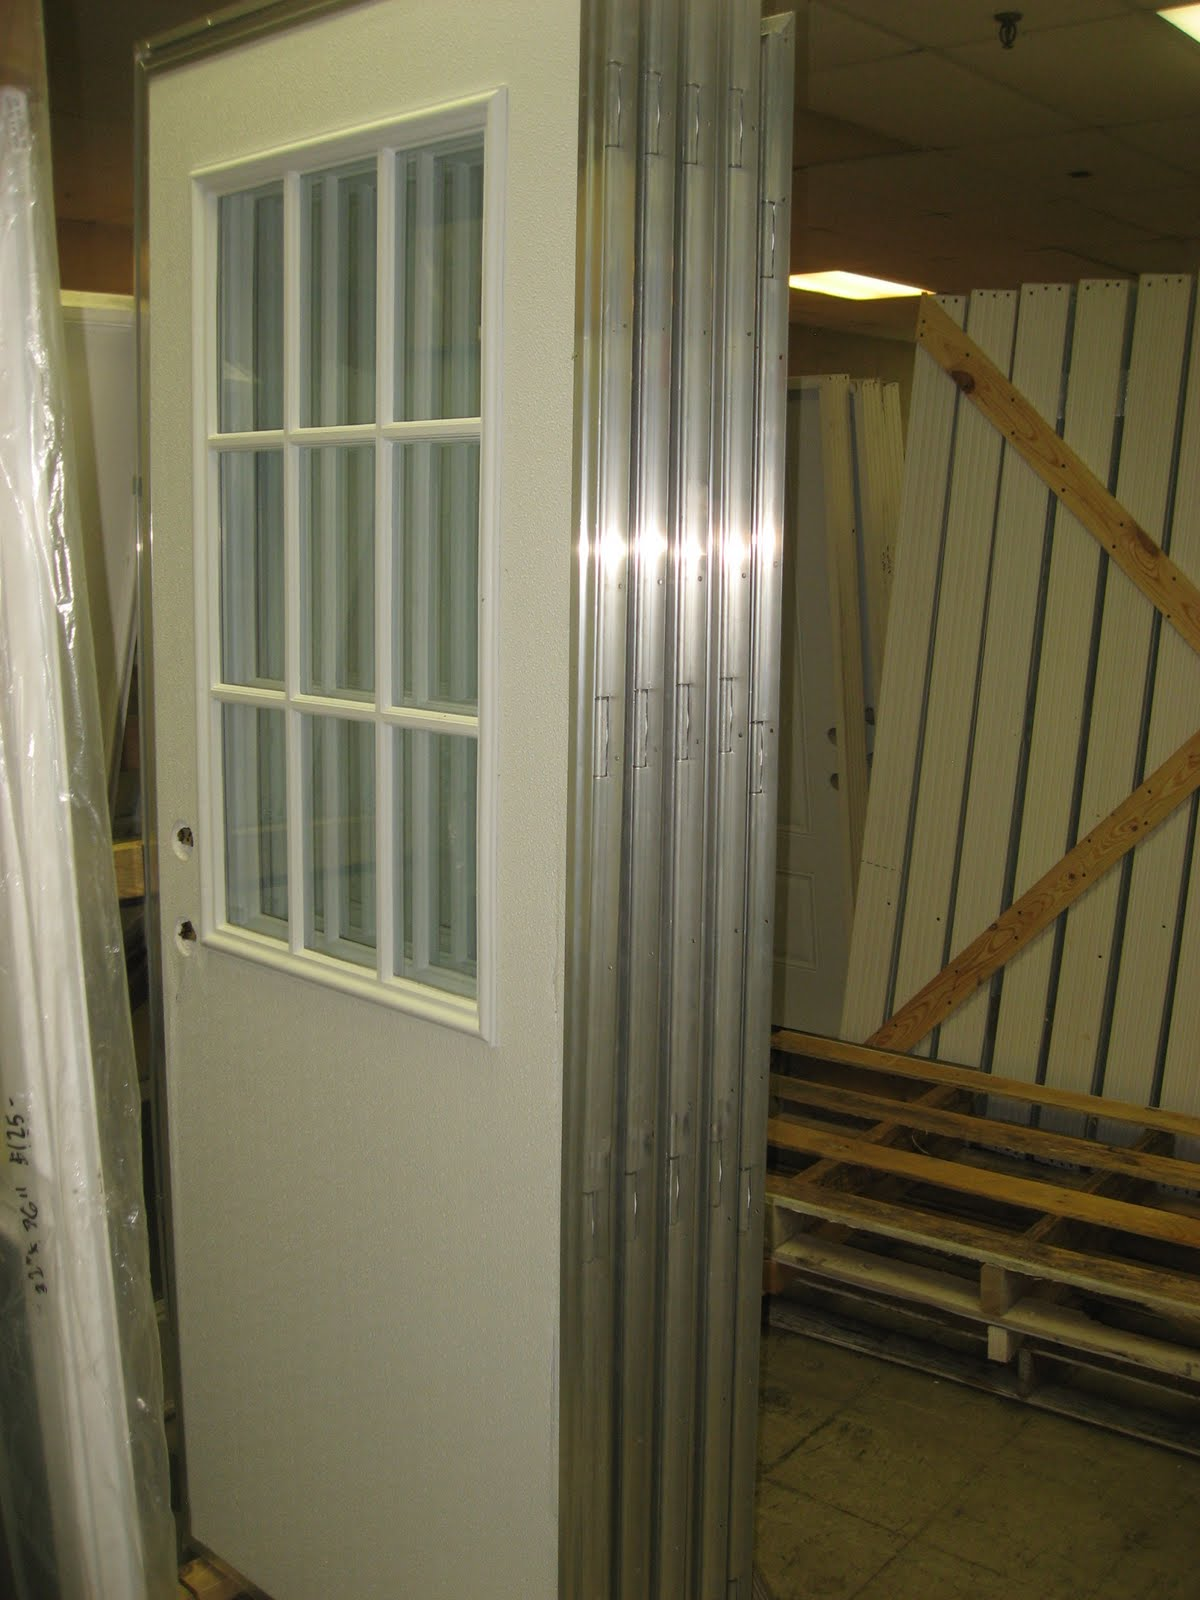 Blue Ridge Surplus: Mobile Home Doors, Windows, Ceiling Board